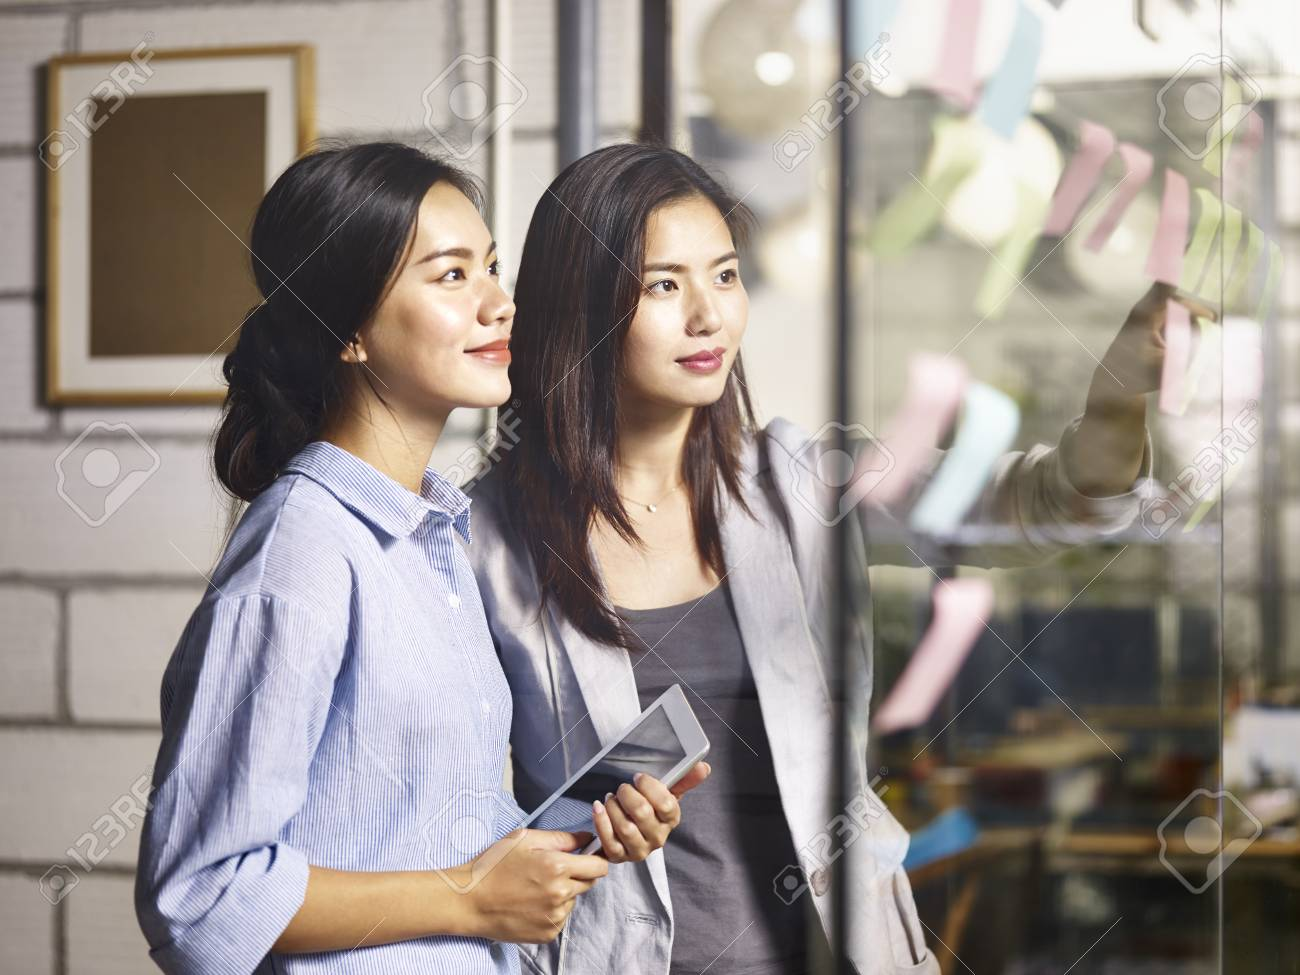 two young asian women entrepreneurs discussing business plan in office using sticky notes. - 90955902